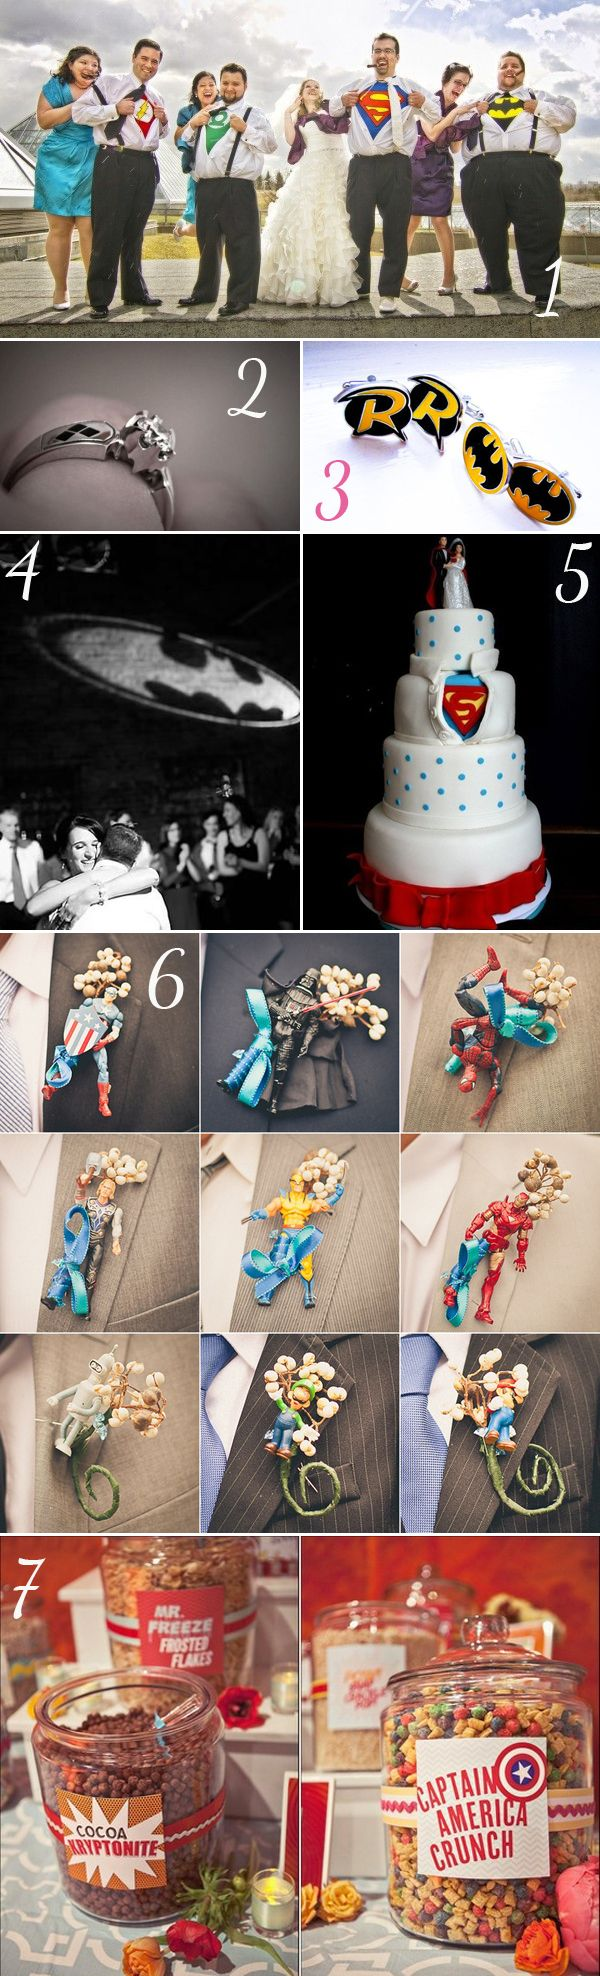 Theme mariage geek - http://www.instemporel.com/blog/index/billet/10786_deco-mariage-geek #Superheros